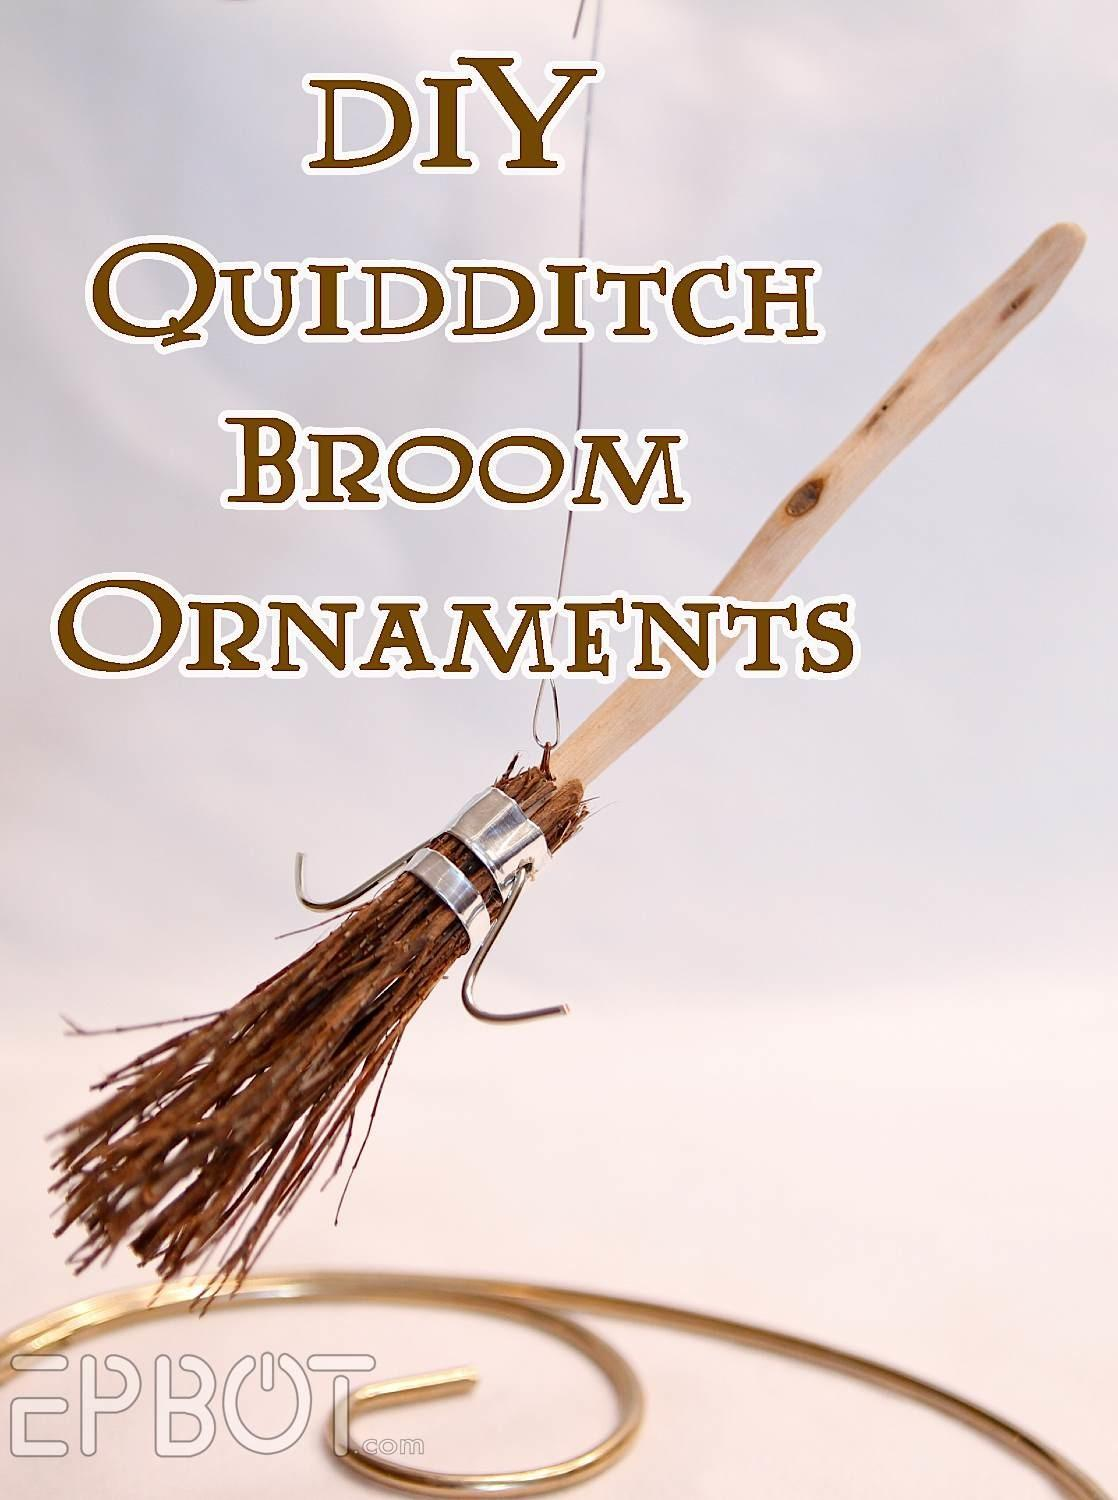 Epbot Diy Harry Potter Quidditch Broom Ornaments